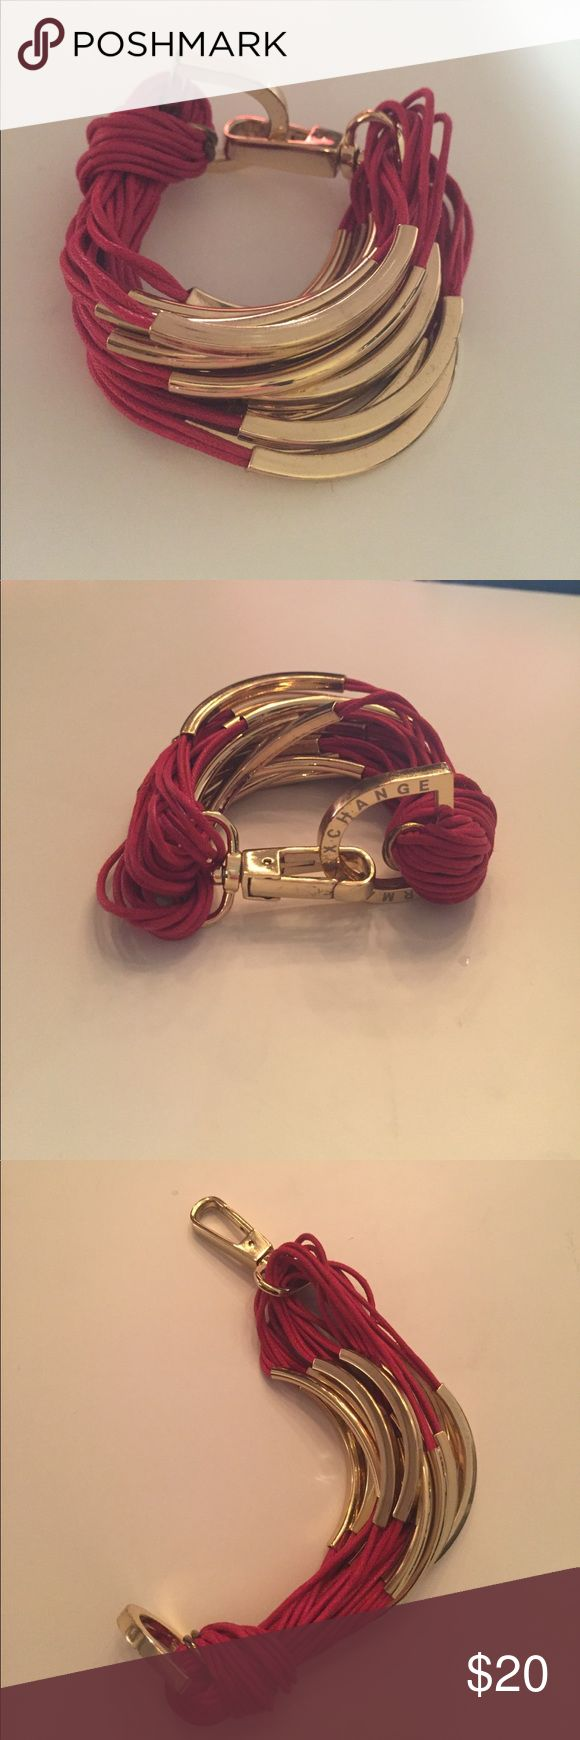 Armani Exchange Red and Gold Cuff Bracelet Armani Exchange multi-strand style cuff with cotton cord and metal links.  One size. Cotton cording and metal. A few scratches on the metal fastening clip but not really noticeable. Fun piece. A/X Armani Exchange Jewelry Bracelets